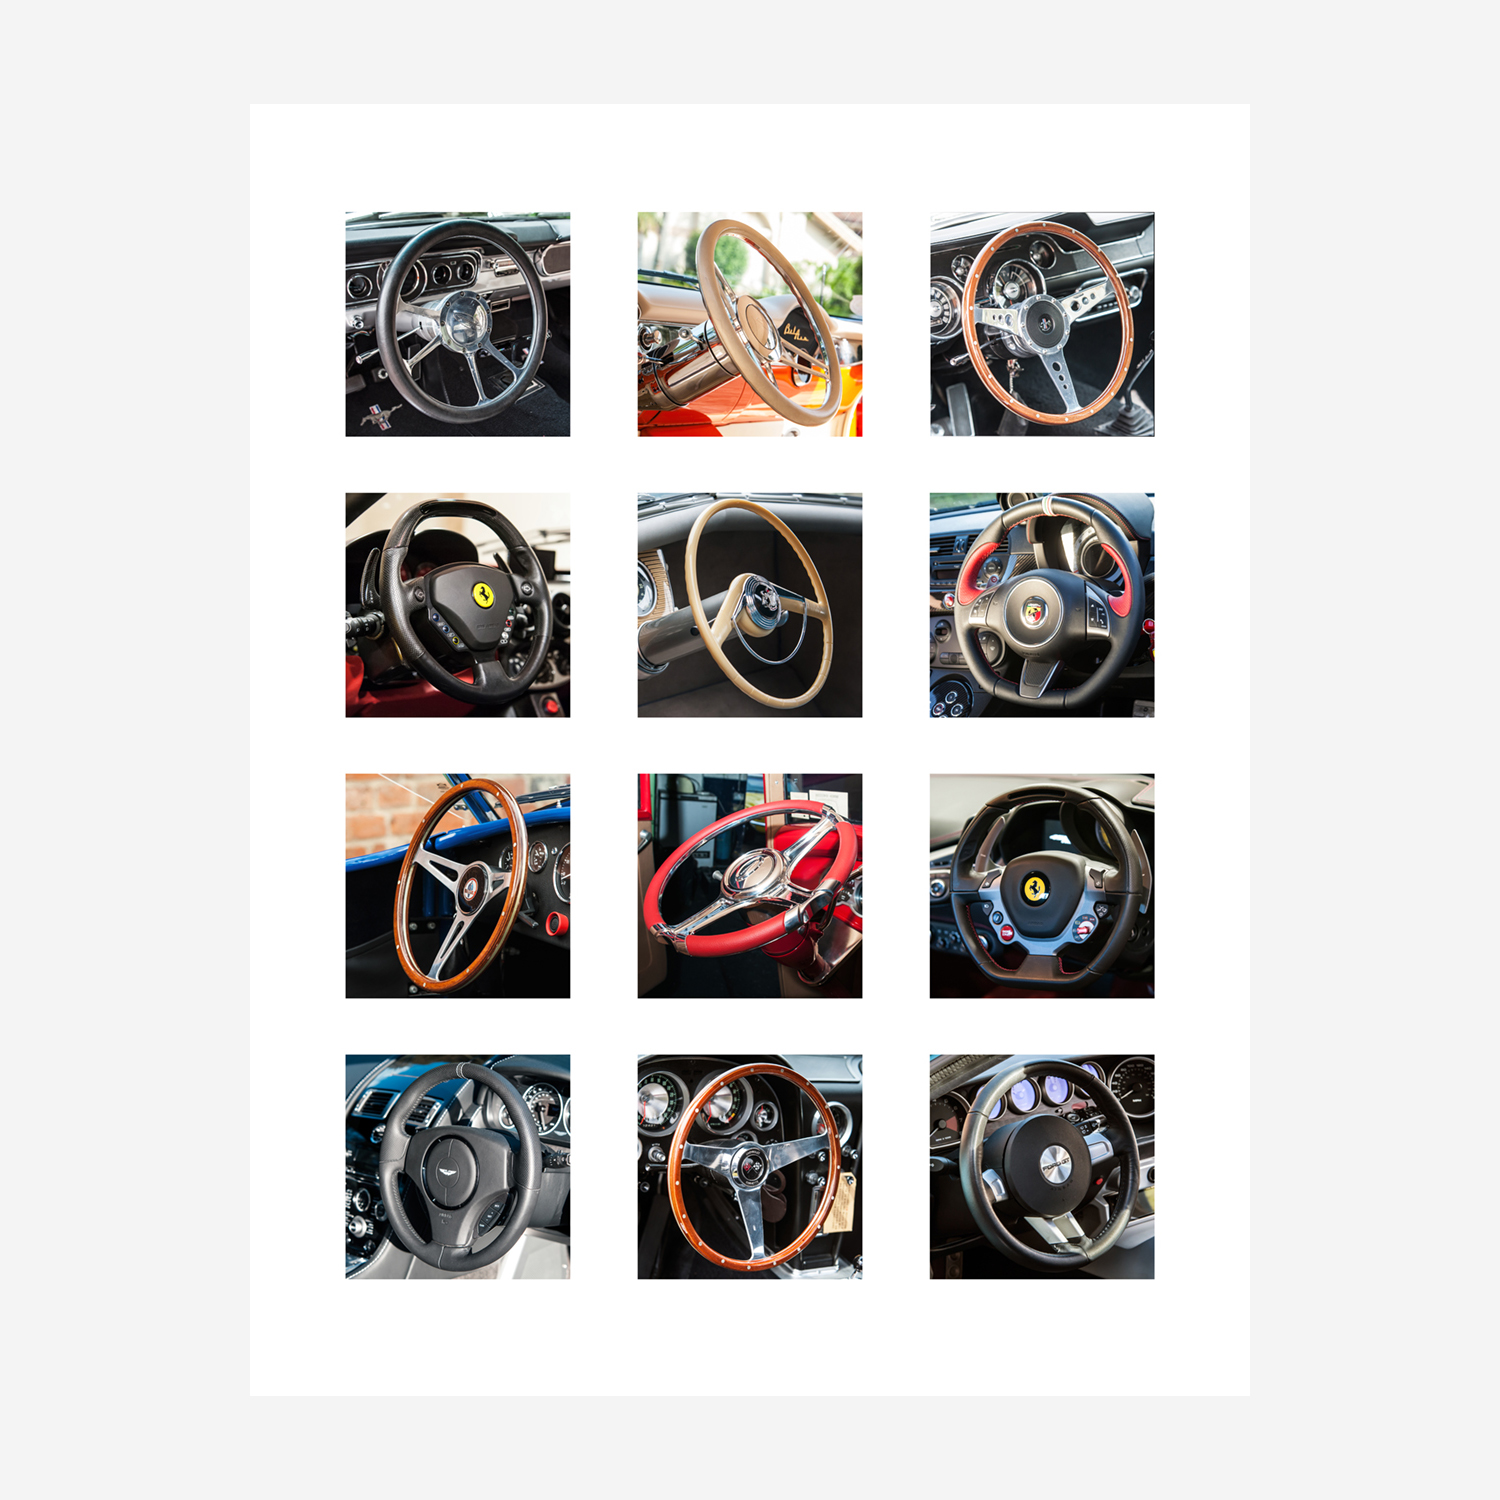 Steering Wheels - 29x22.jpg